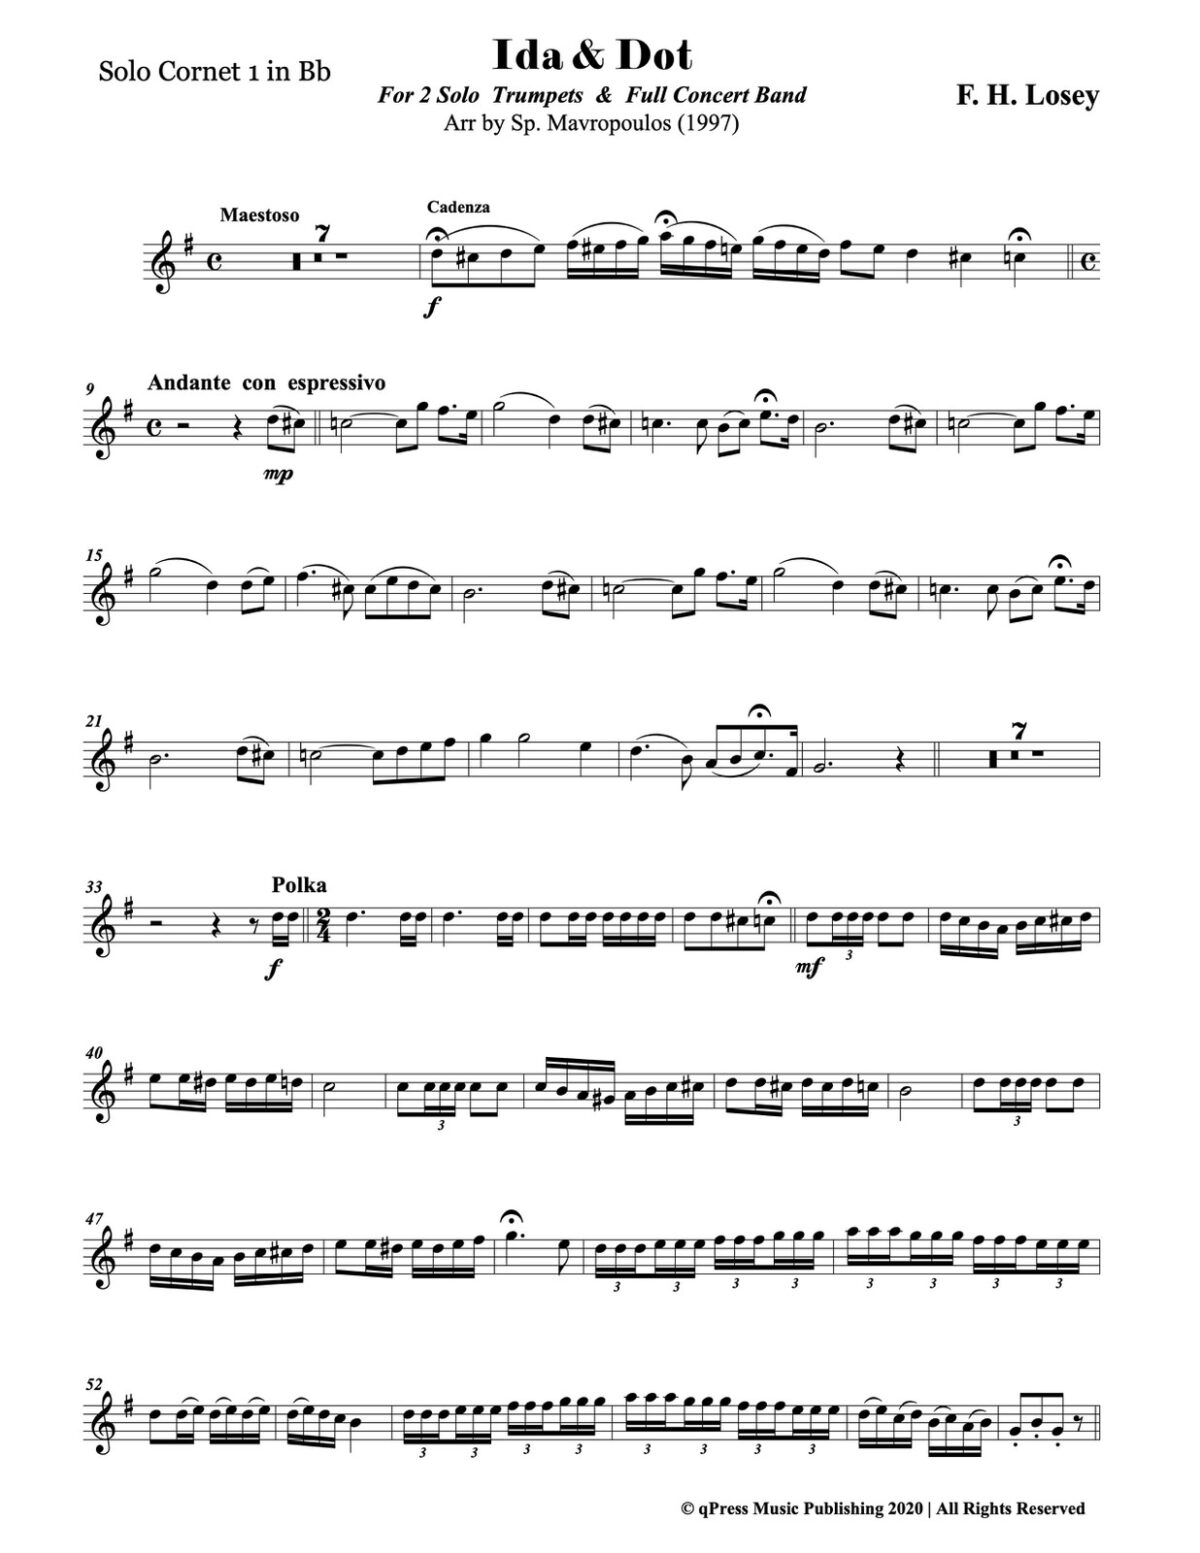 Losey, Ida & Dot for 2 Solo Trumpets and Band-p03